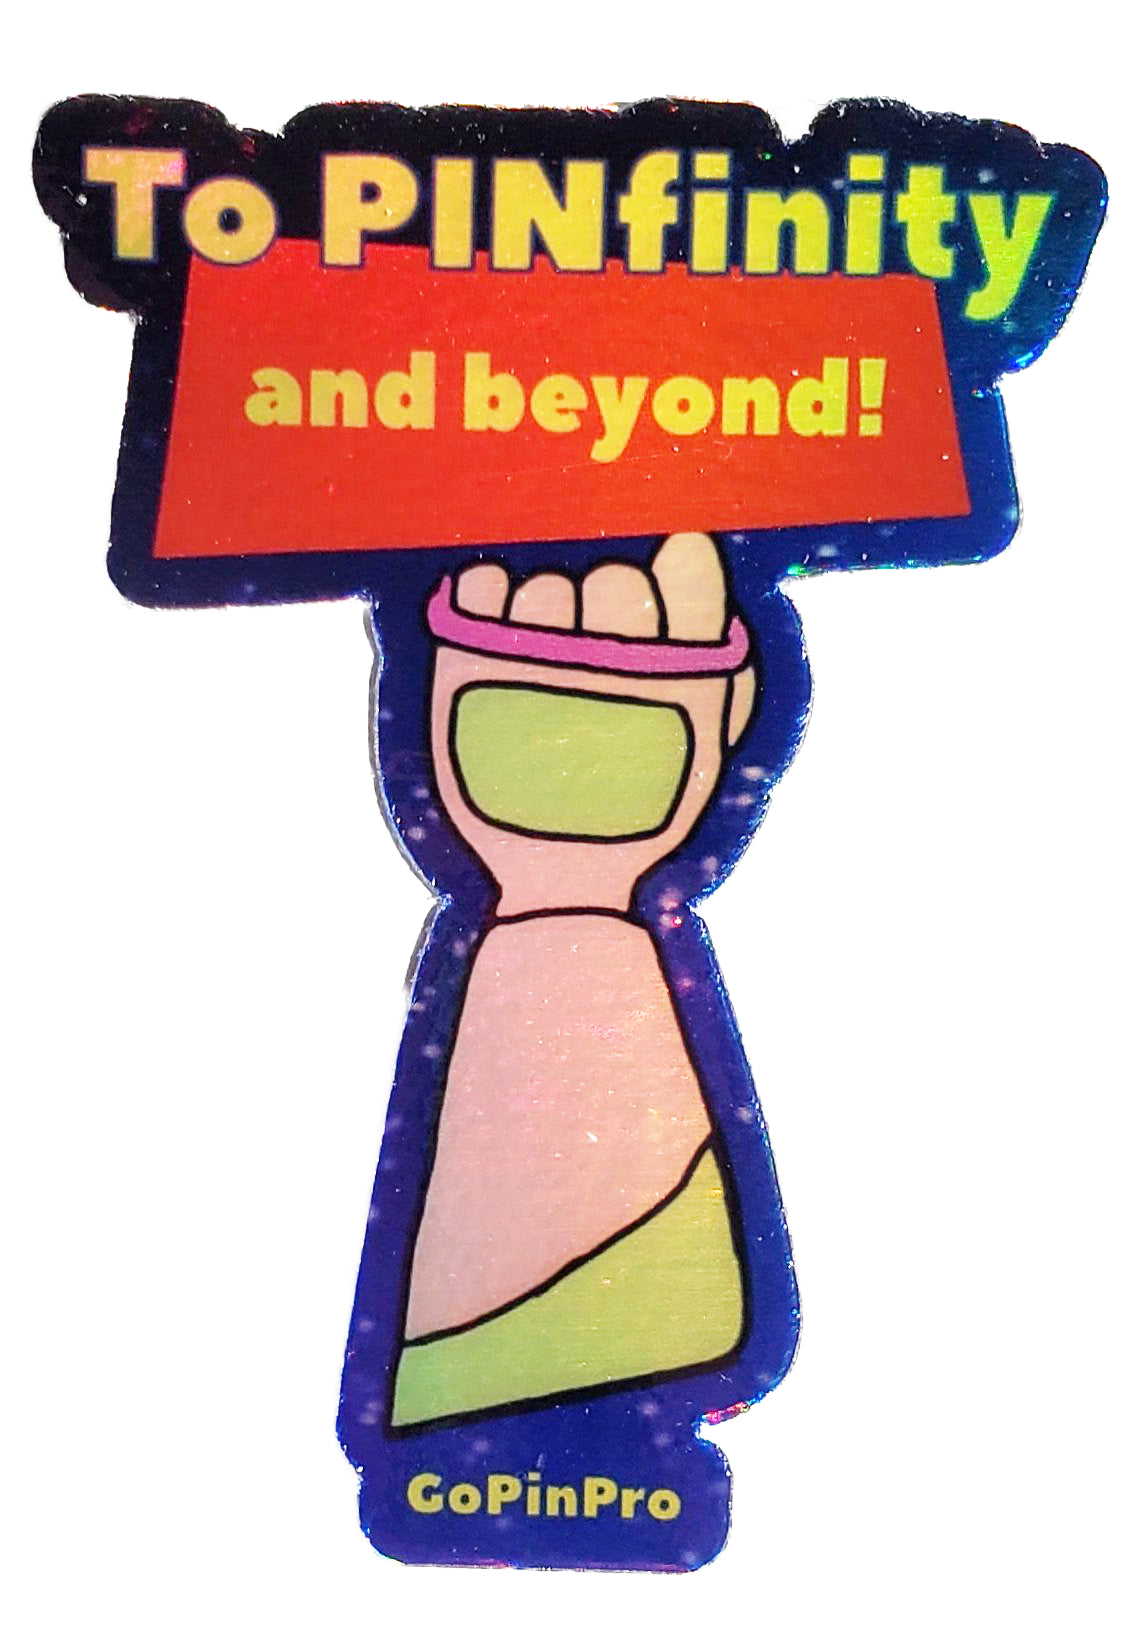 "To PINfinity and beyond holographic vinyl stickers 2.21"" × 3"" - GoPinPro"